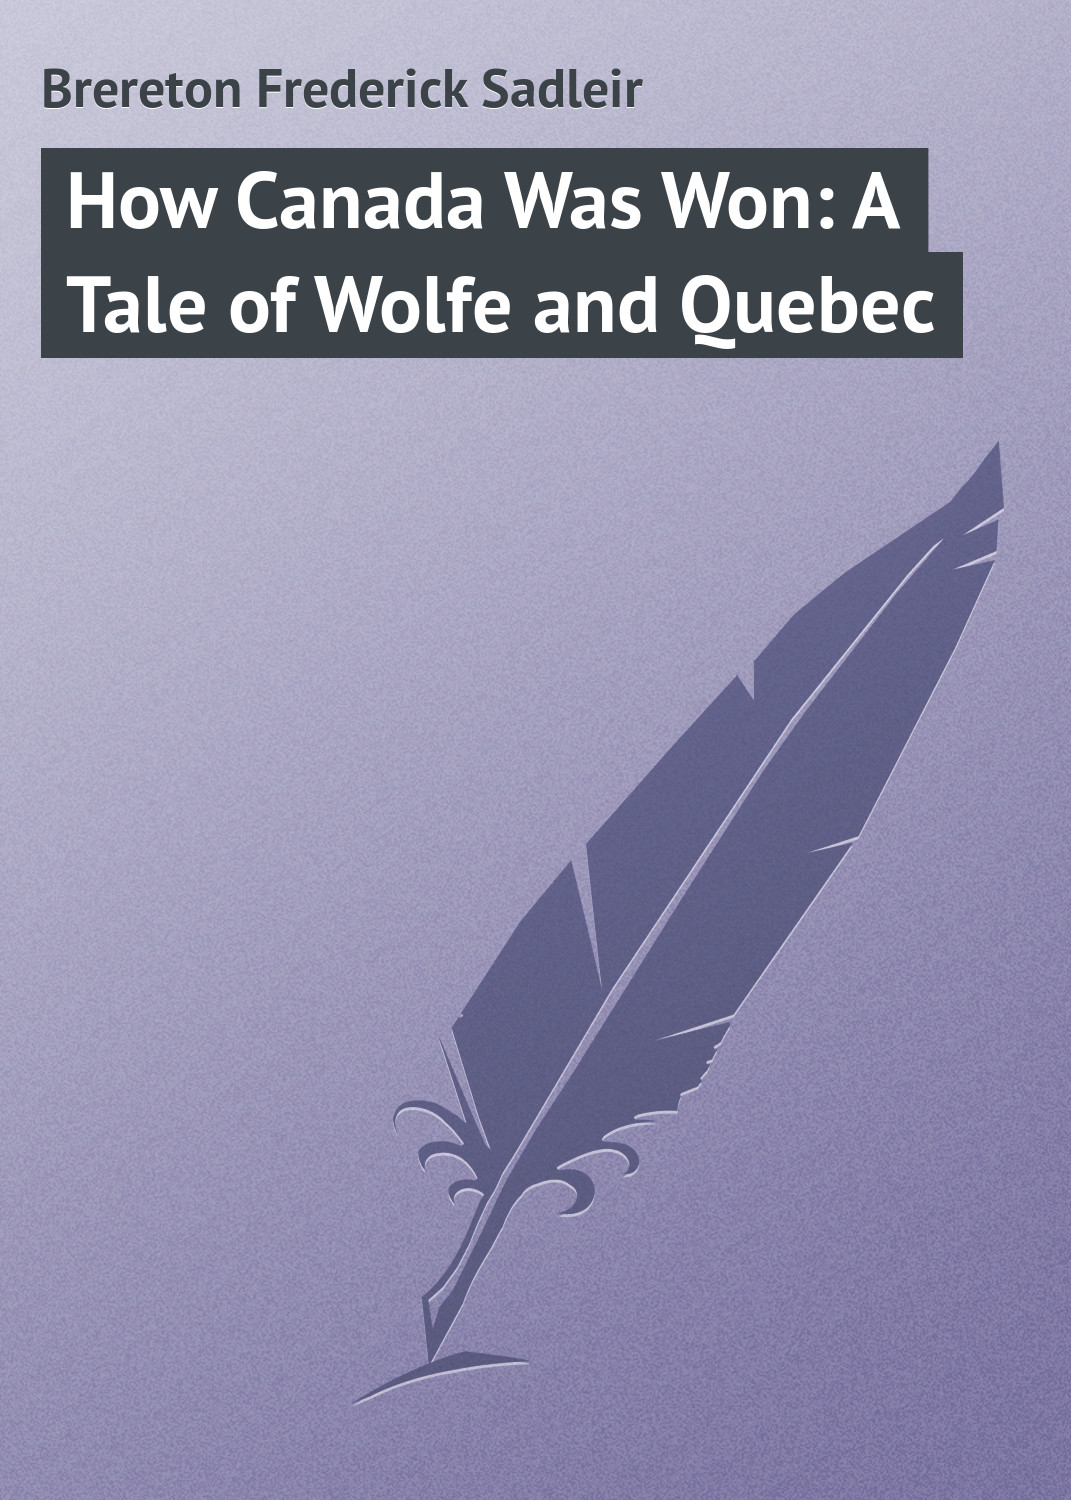 Brereton Frederick Sadleir How Canada Was Won: A Tale of Wolfe and Quebec led zeppelin – how the west was won 4 lp